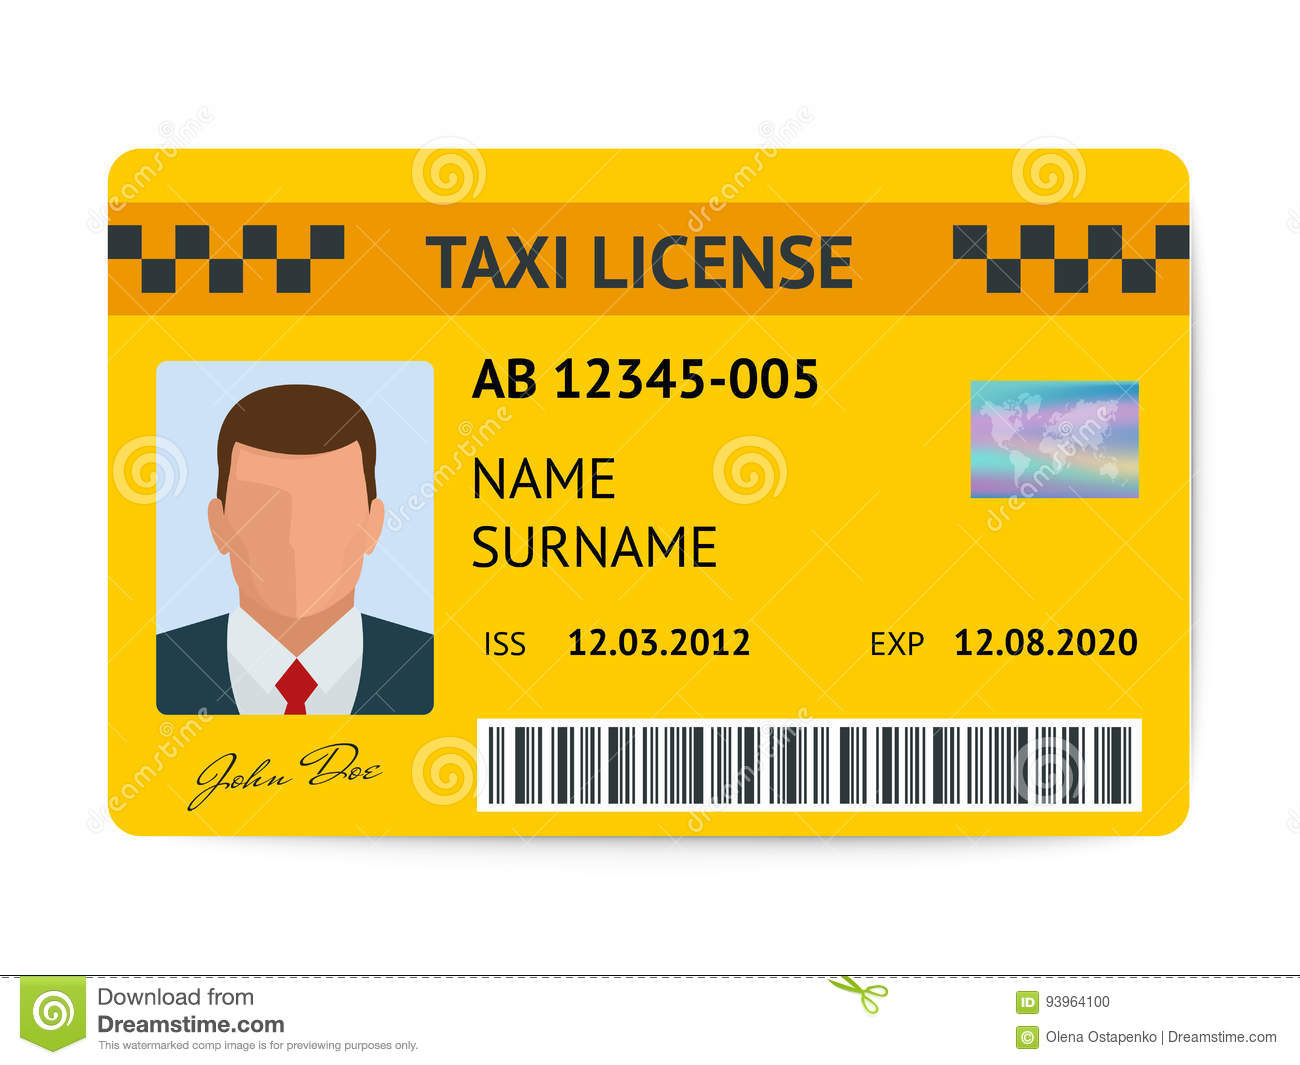 Lottery application for a taxi licence